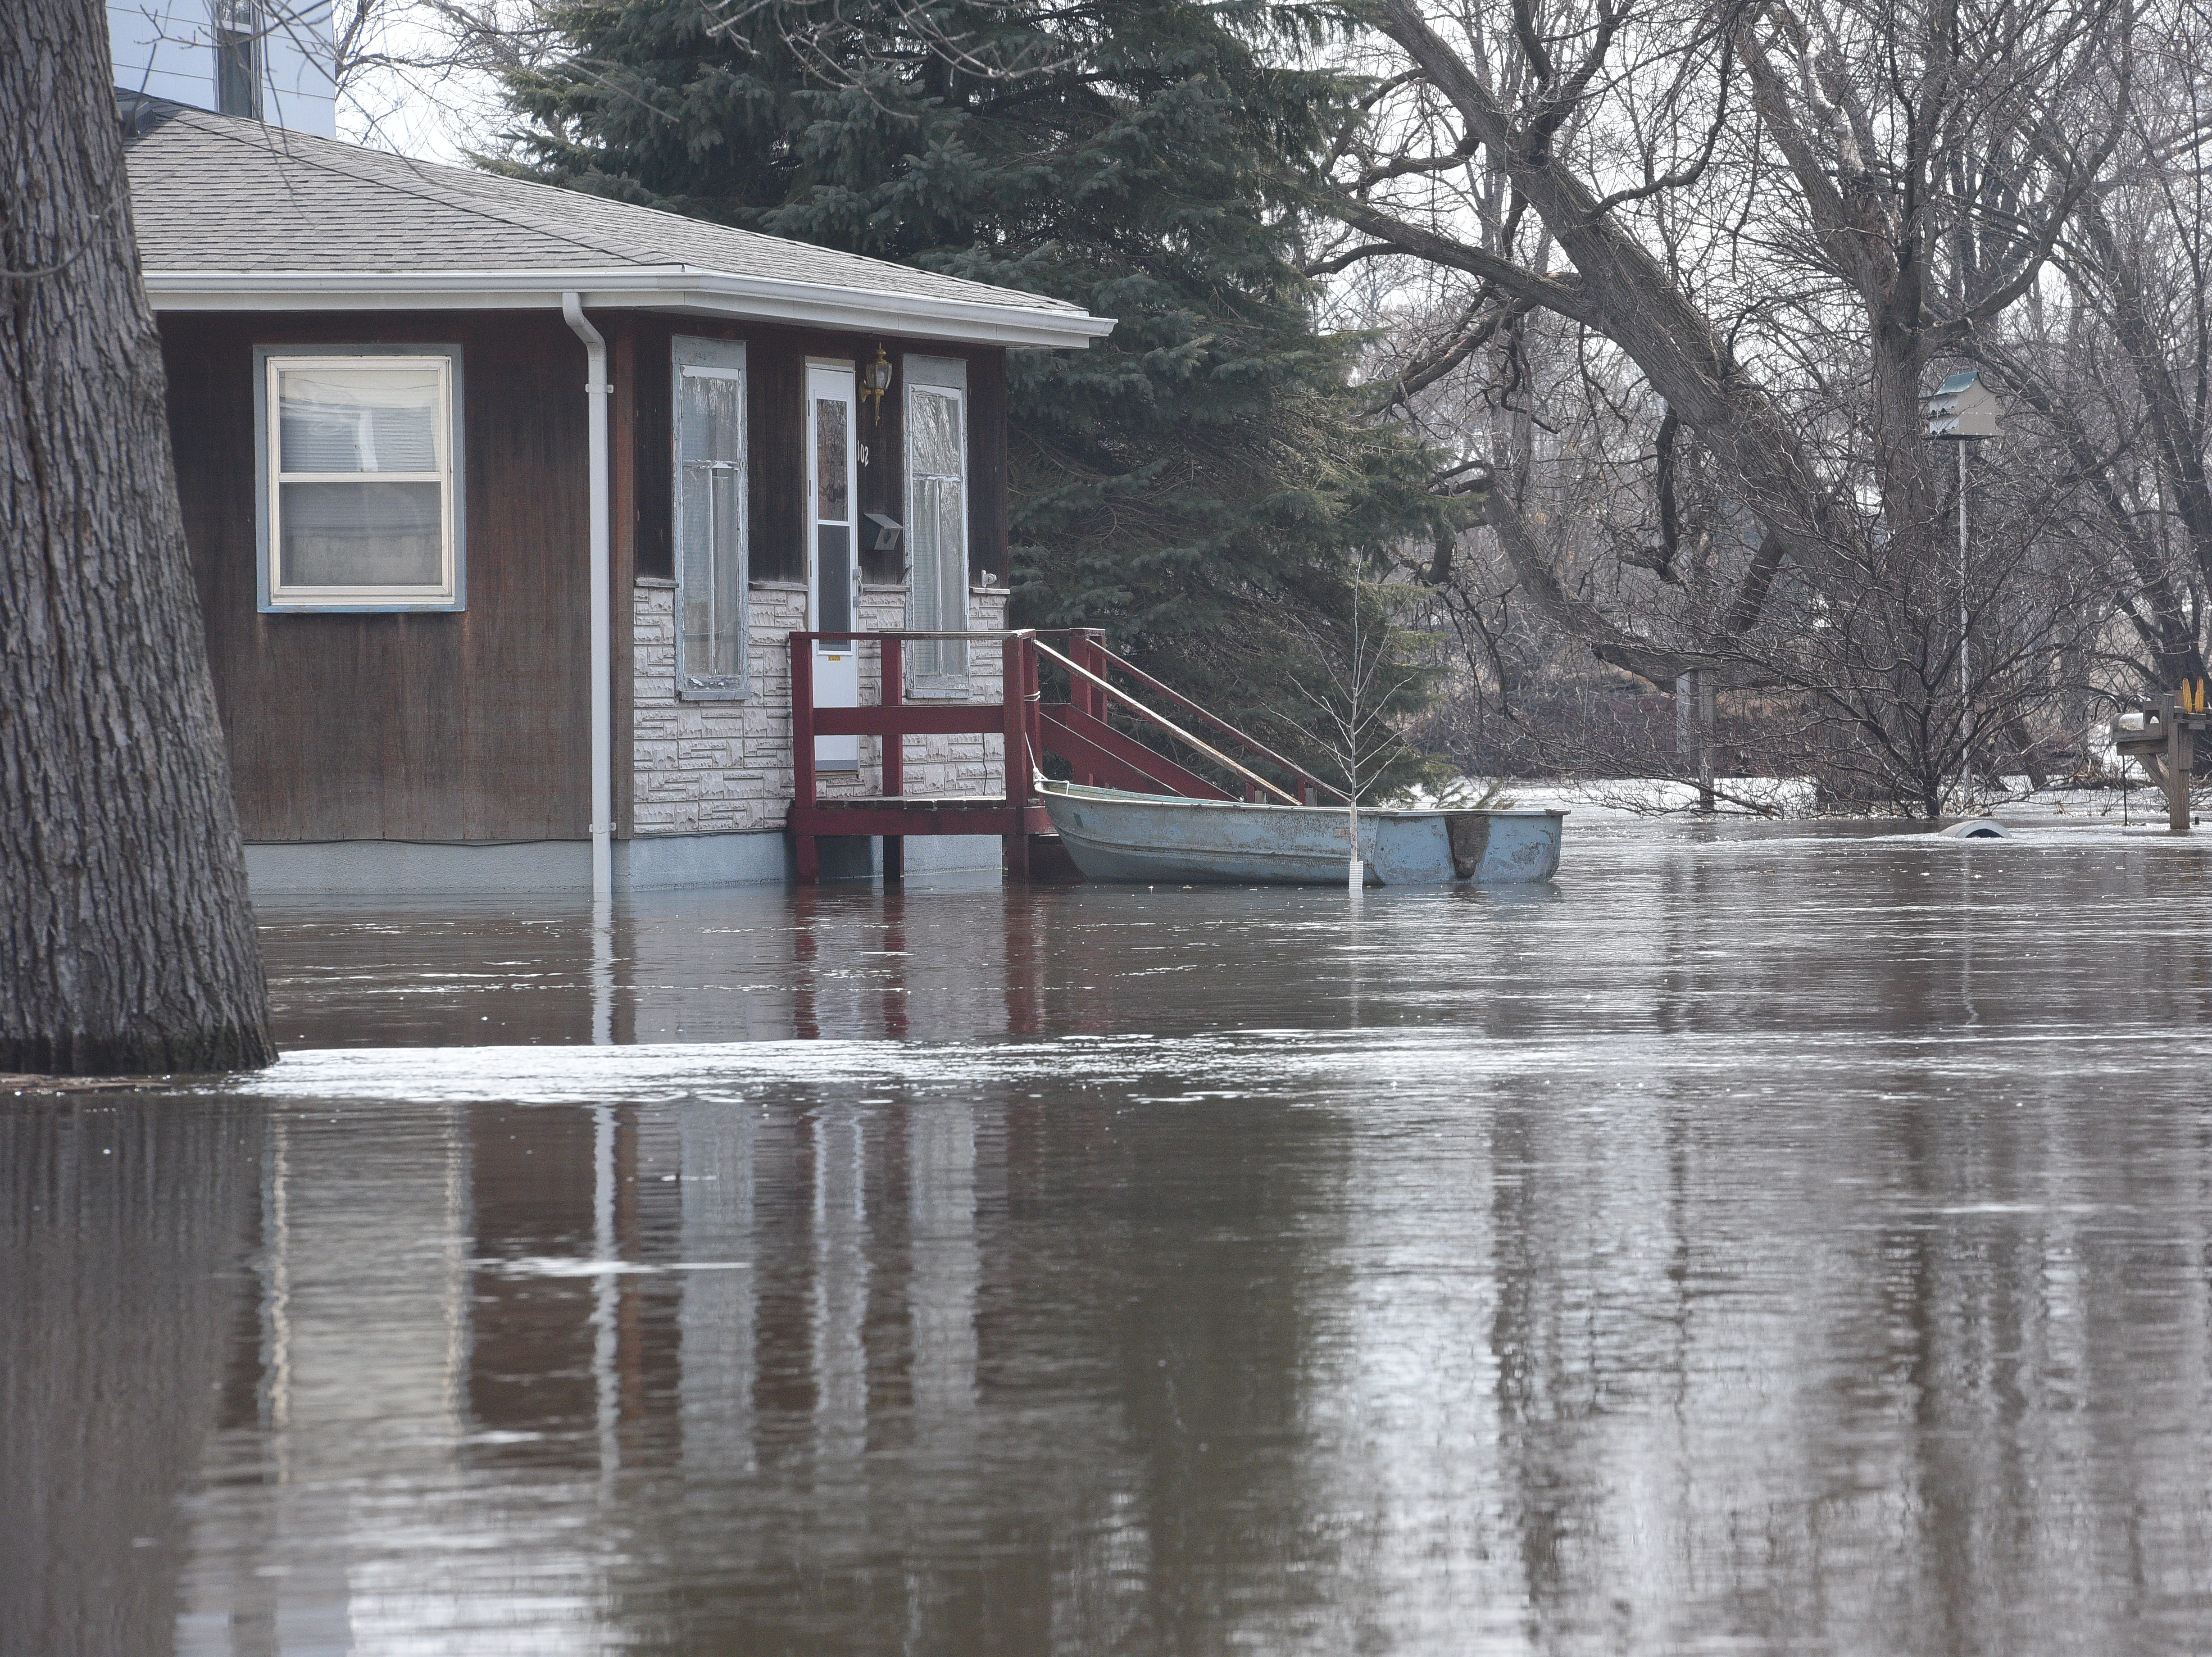 Flooding in Dell Rapids on March 24, 2019